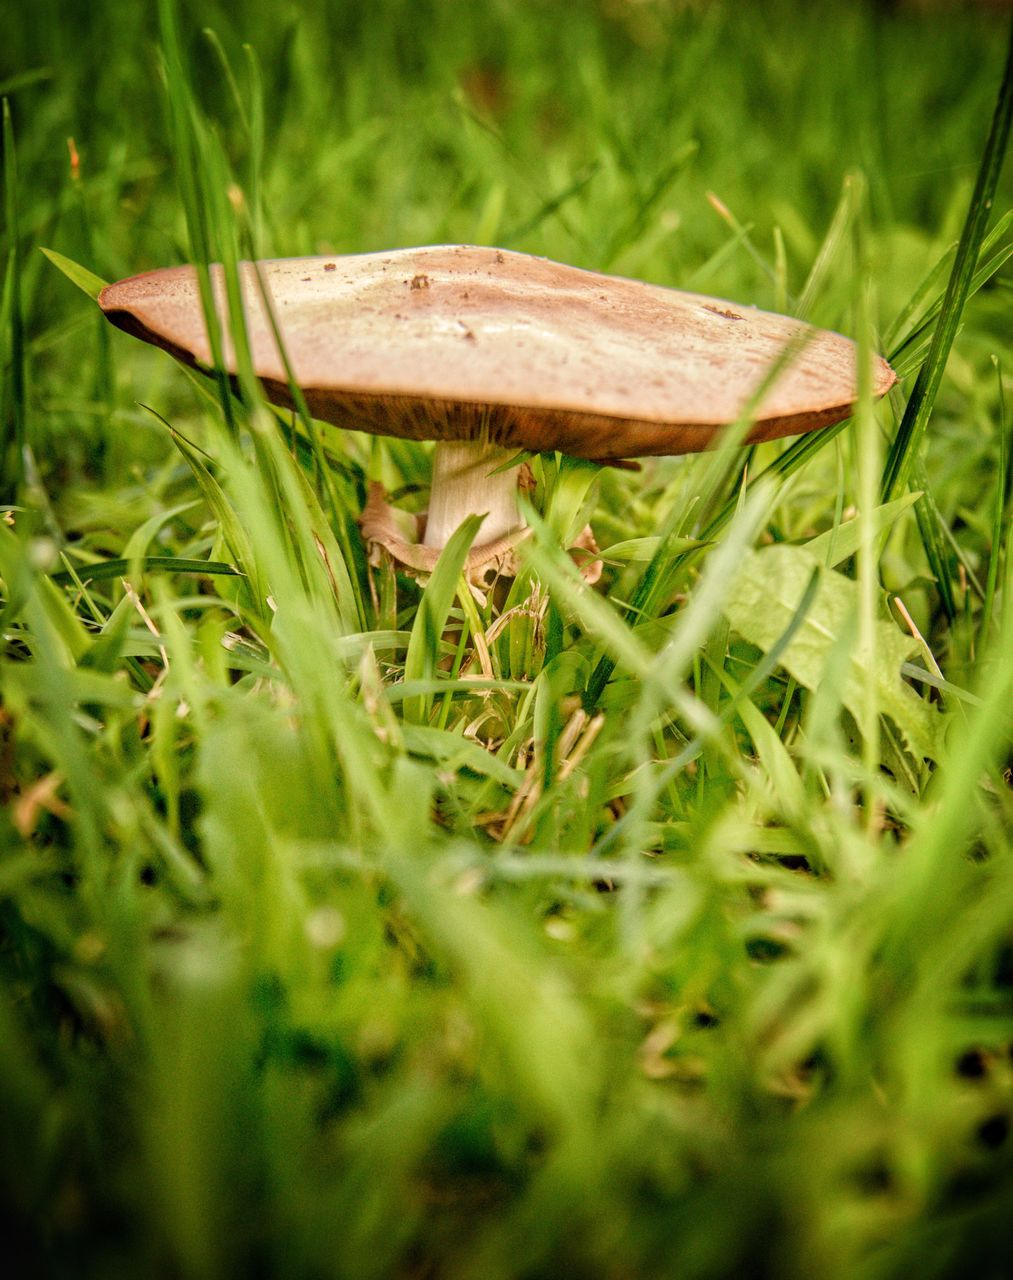 mushroom, grass, growth, nature, fungus, field, toadstool, selective focus, close-up, beauty in nature, fly agaric, outdoors, green color, day, no people, fragility, freshness